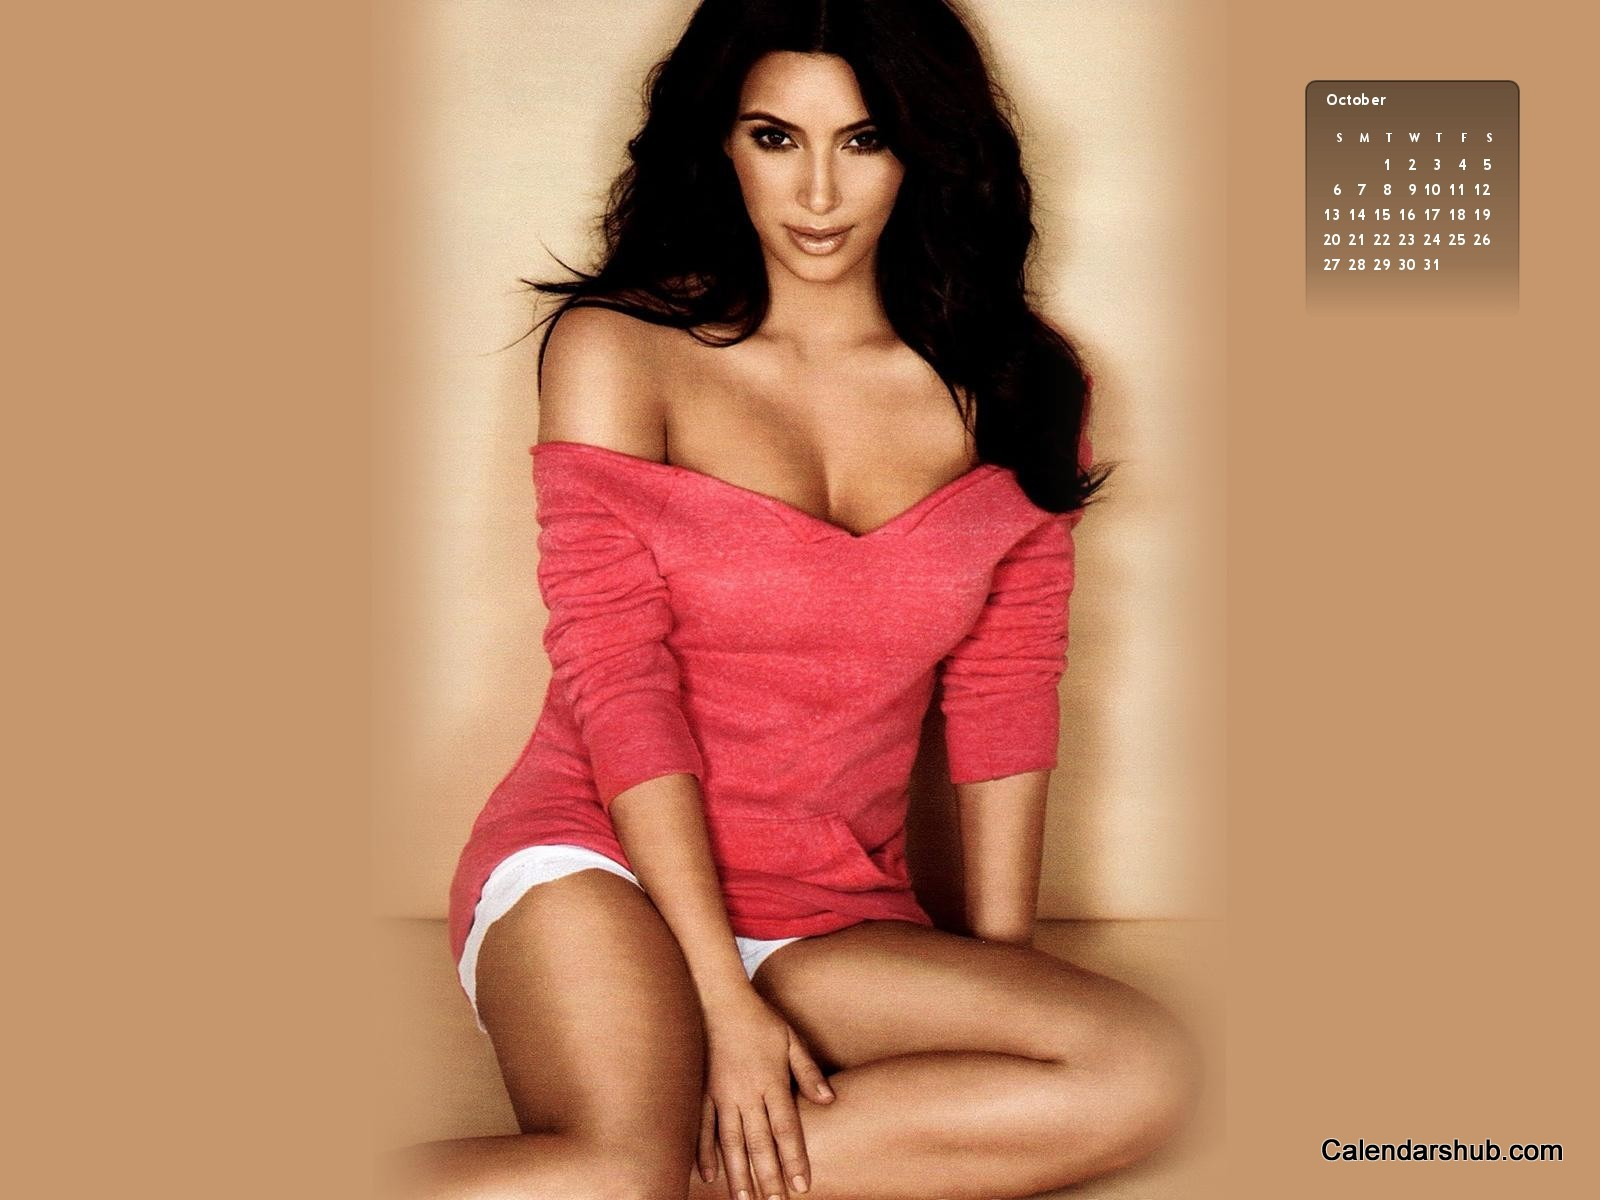 Calendarshub.com presents Kim Kardashian Calendar 2013 - Download Now!